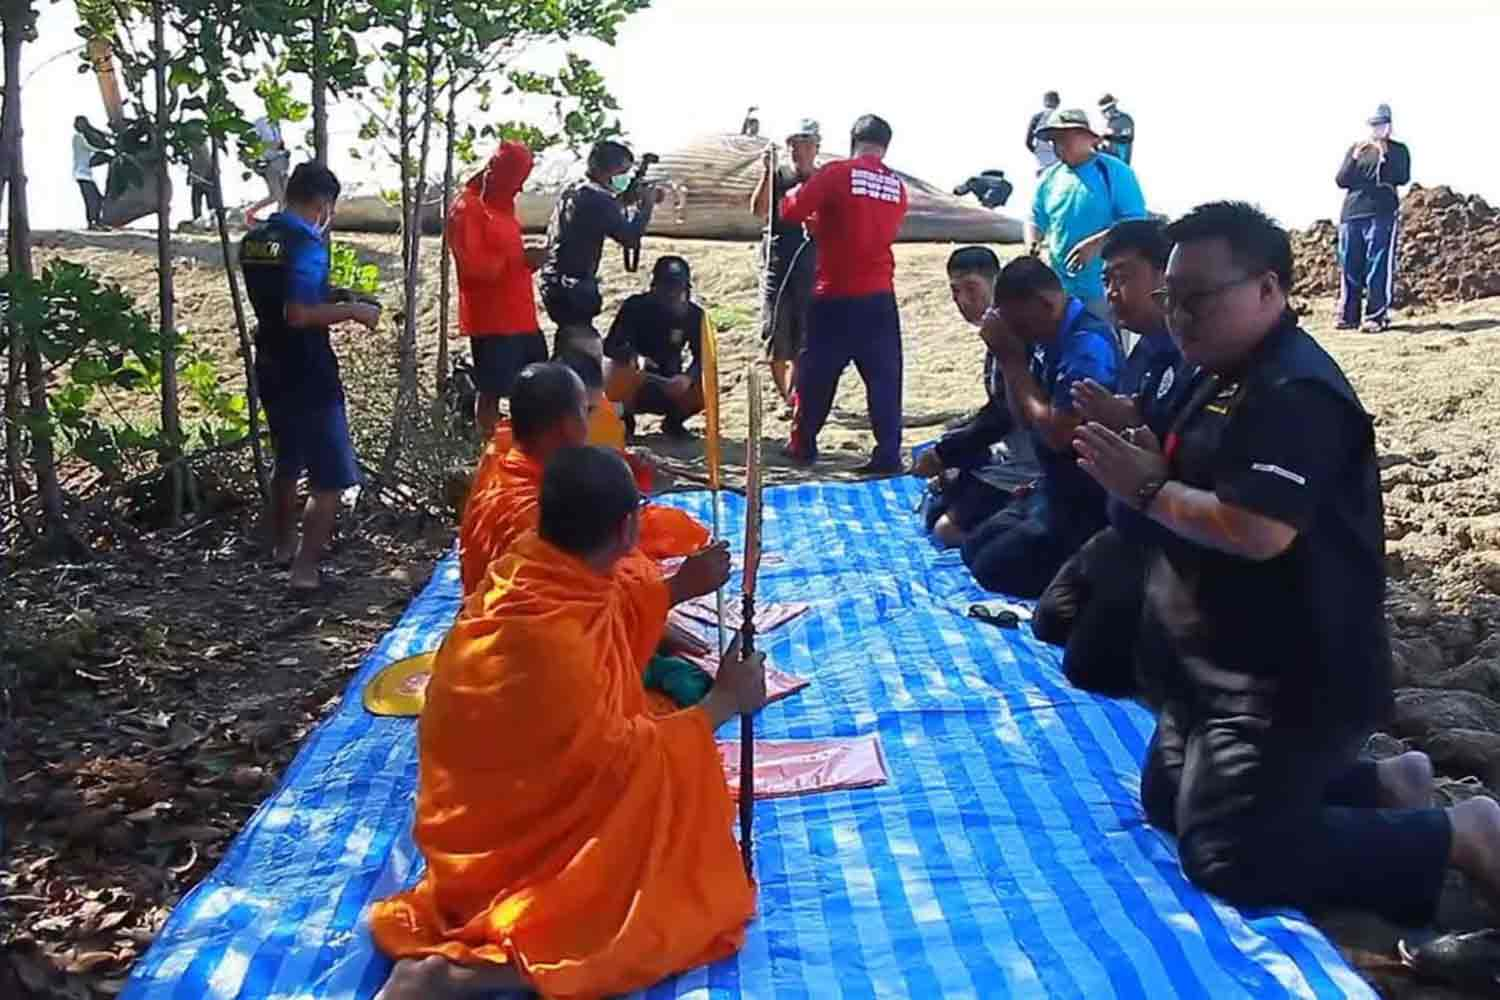 Four monks chant a prayer during a religious rite on Monday for the dead Bruda whale, on the beach in the background, behind Tessaban Bang Poo 2 School in Samut Prakan's Muang district. (Photo by Sutthiwit Chayutworakan)